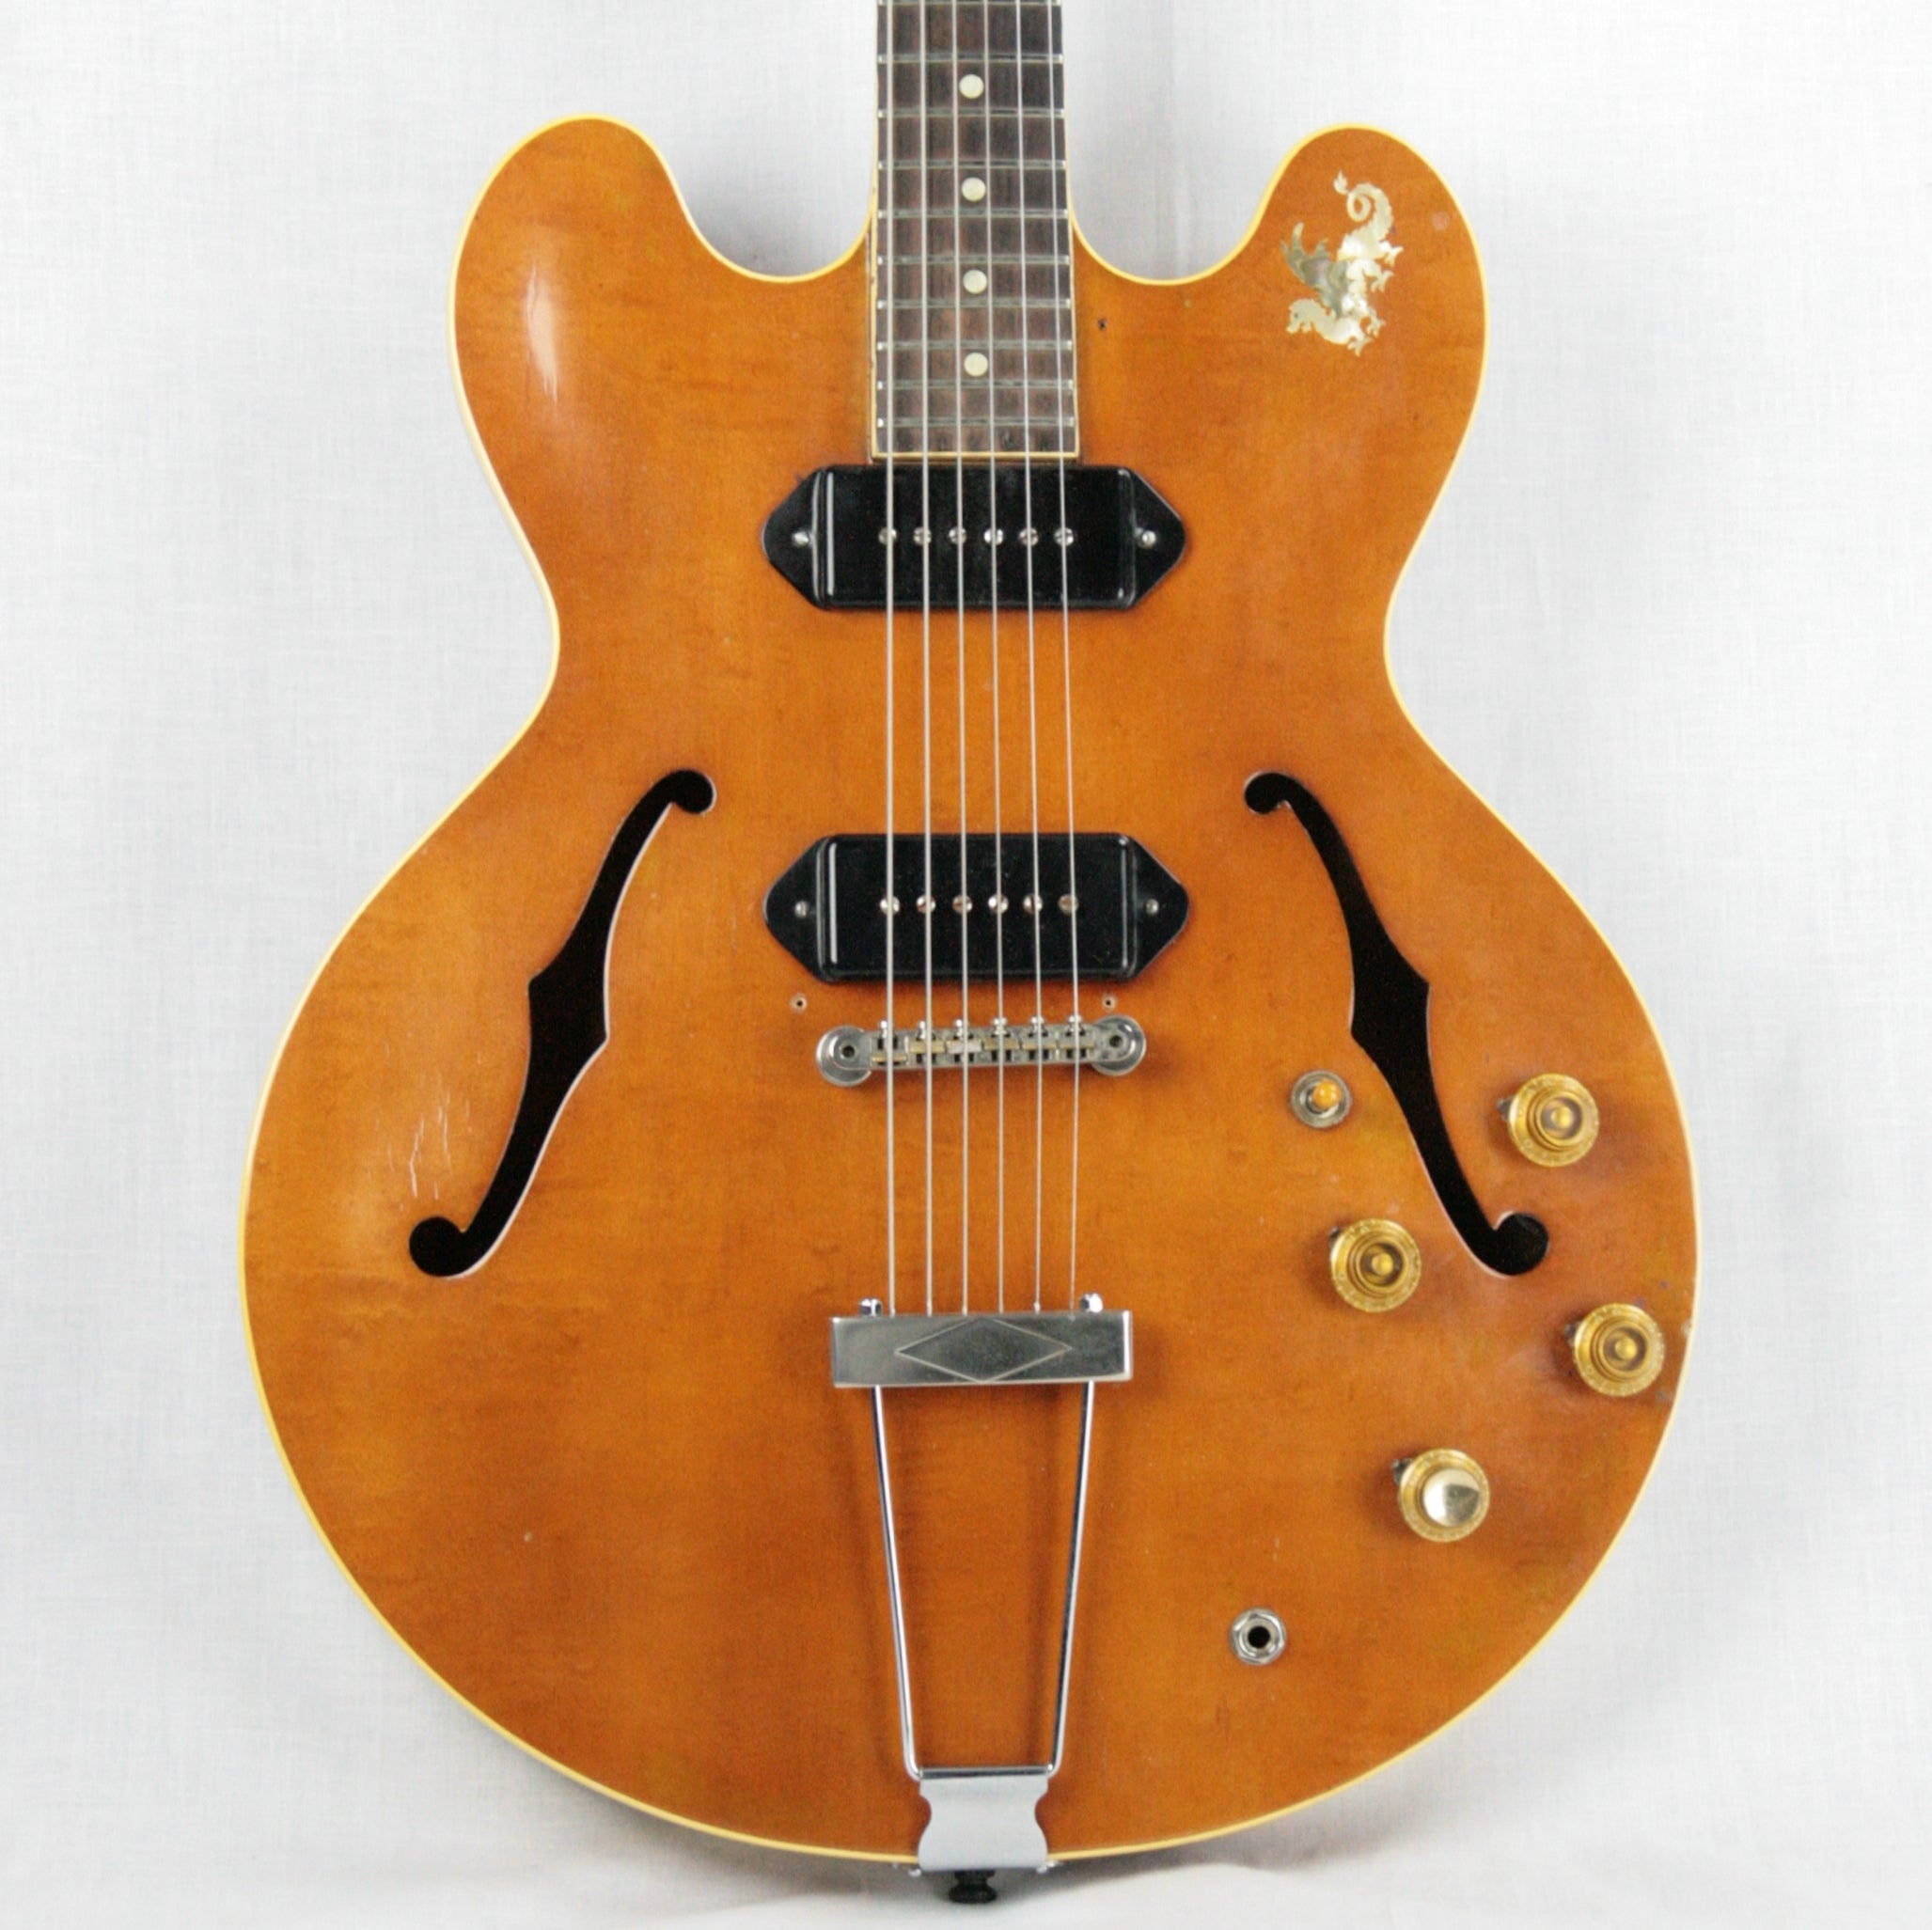 1959 Gibson ES-330 TD Thinline Electric Guitar Player-Grade! 2 P90's Sound Great! 225 335